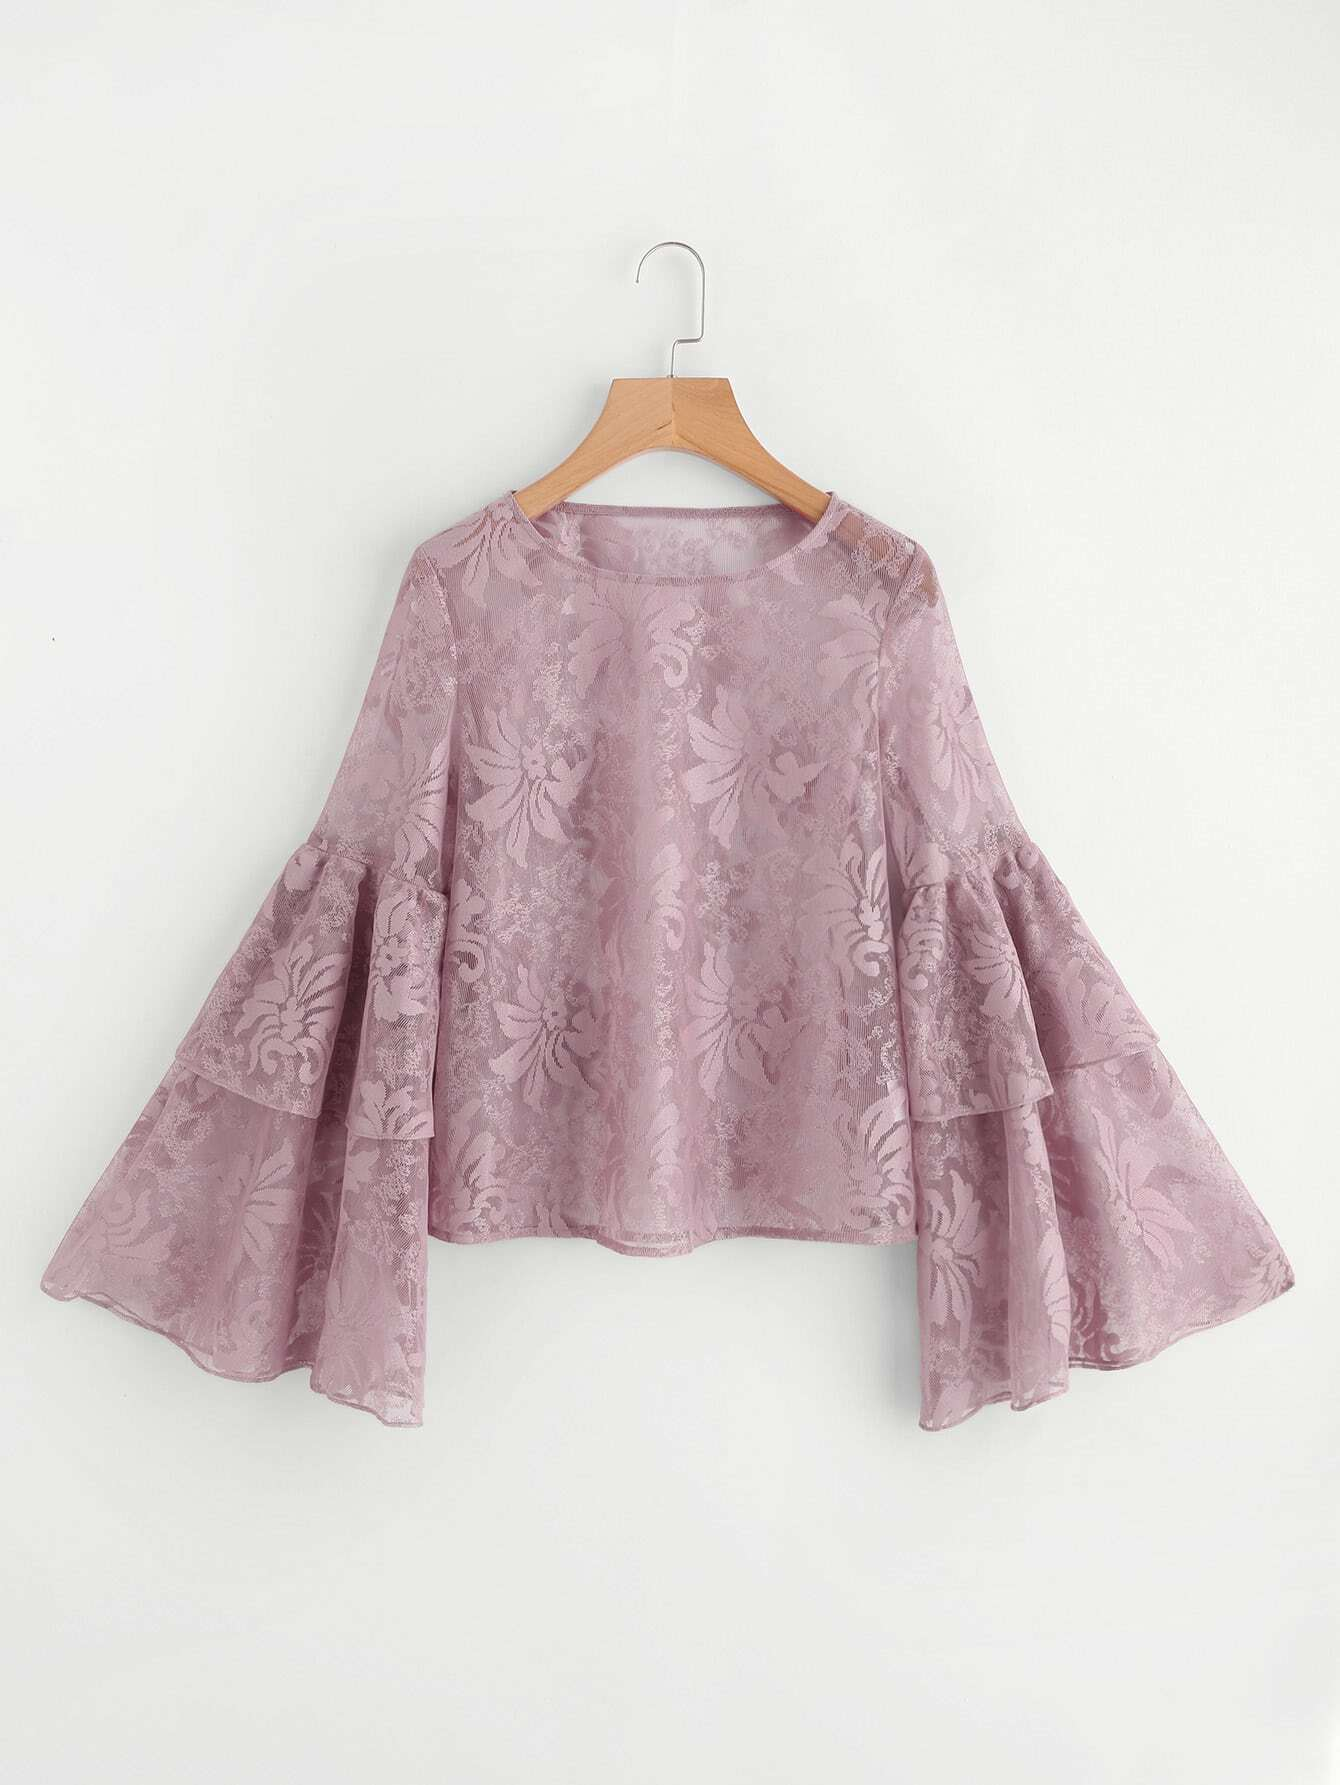 Layered Trumpet Sleeve Floral Lace Top blouse171010452